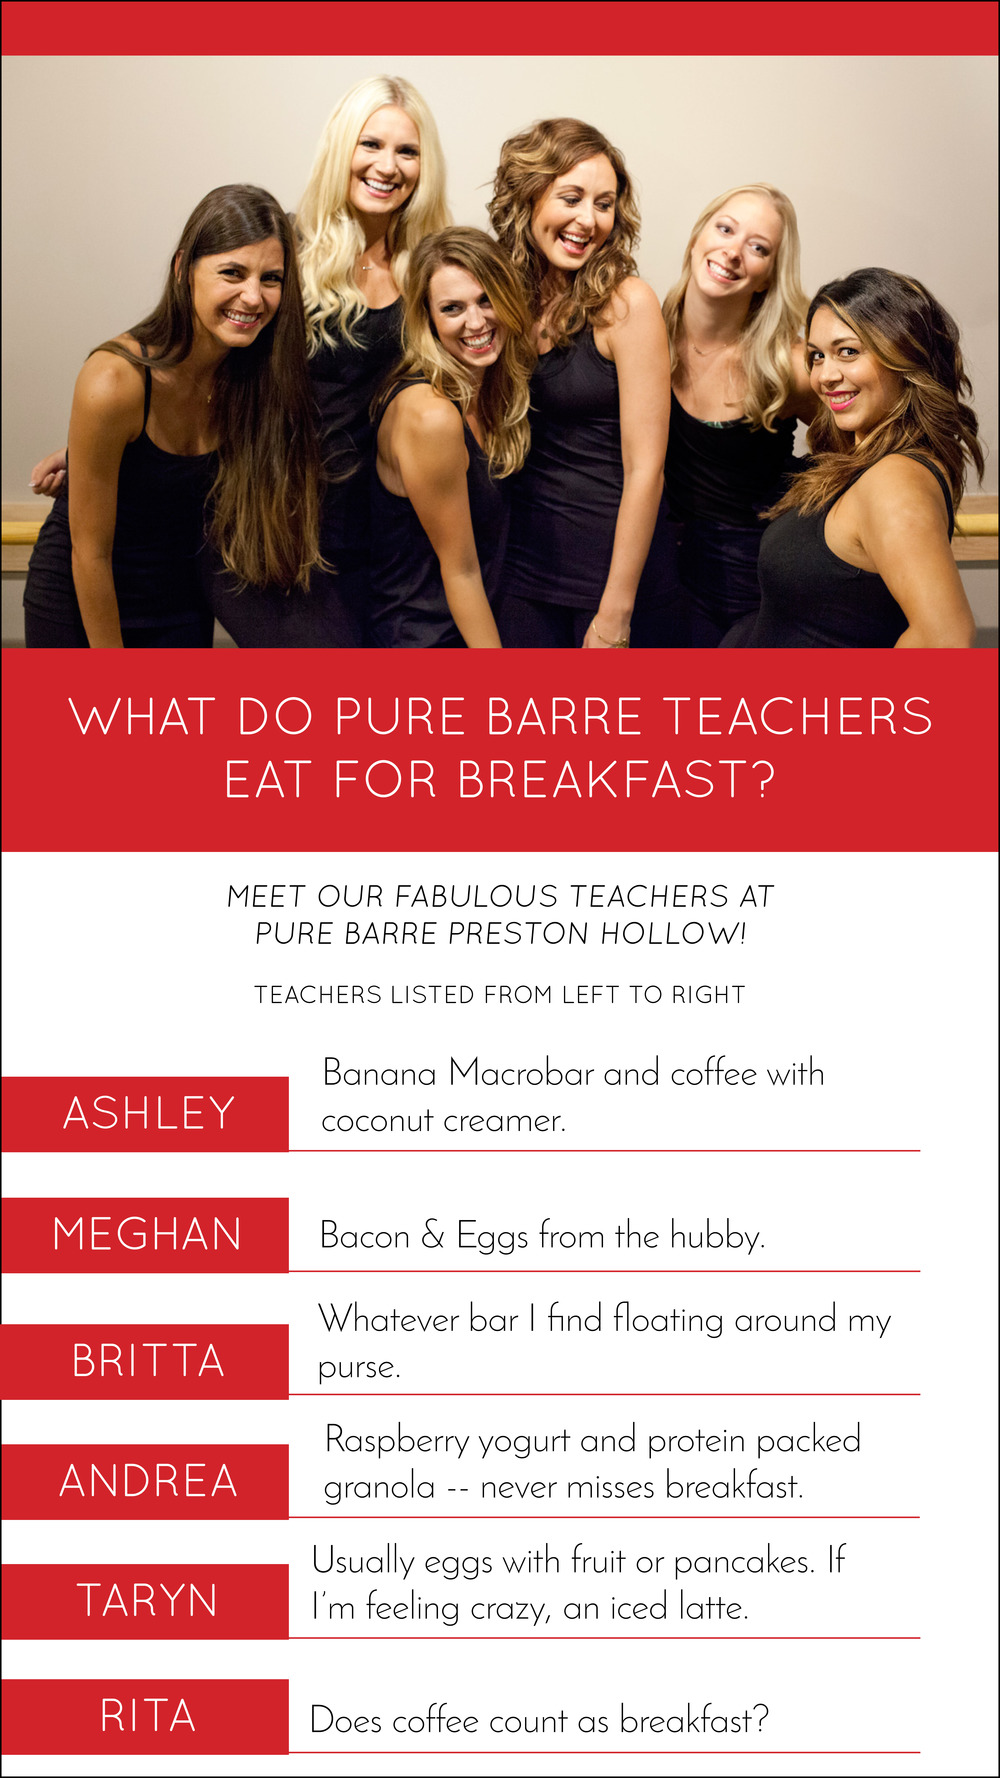 Image provided by Pure Barre Preston Hollow.